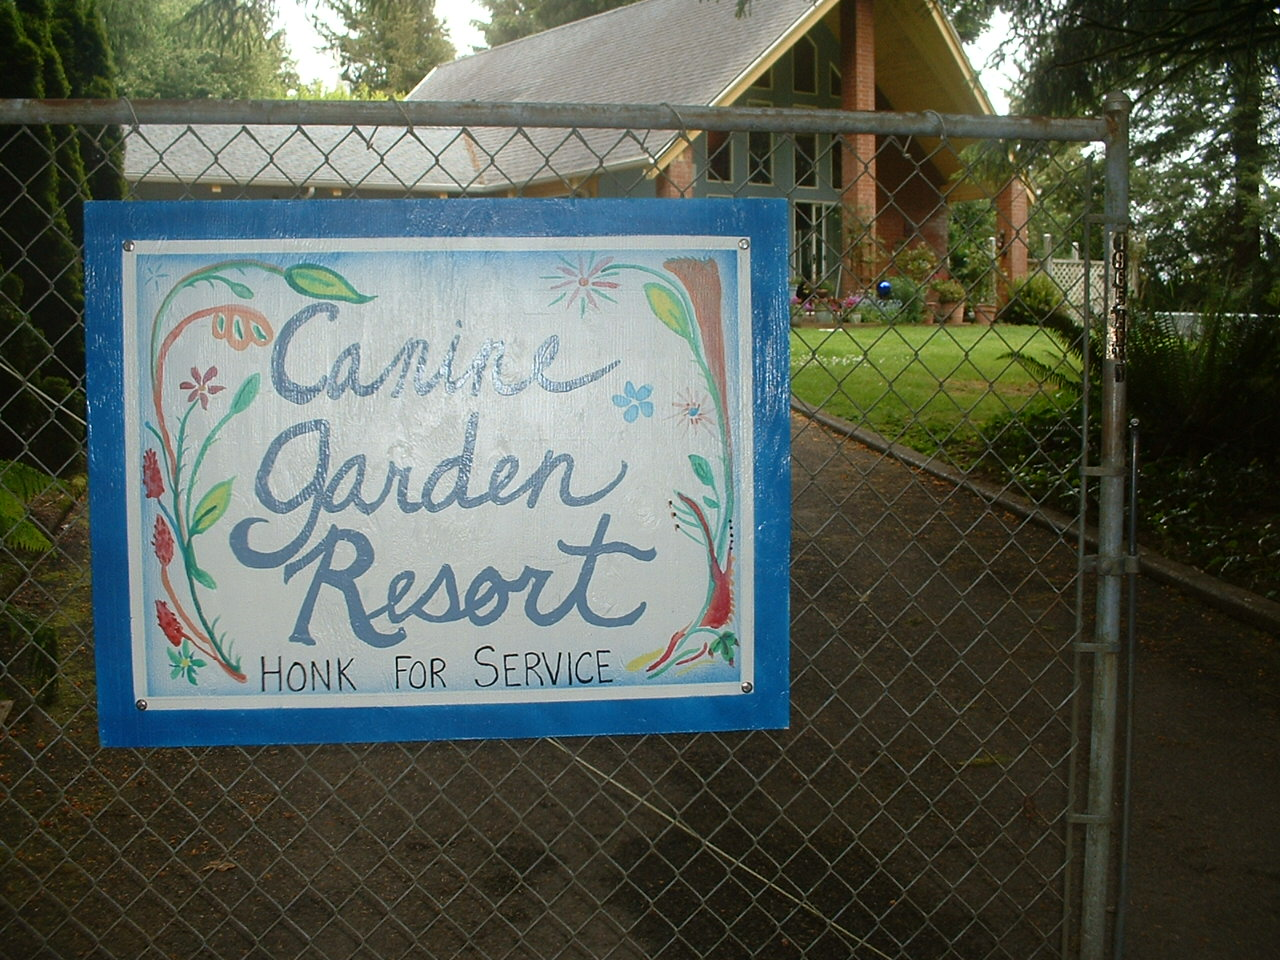 The Canine Garden Resort